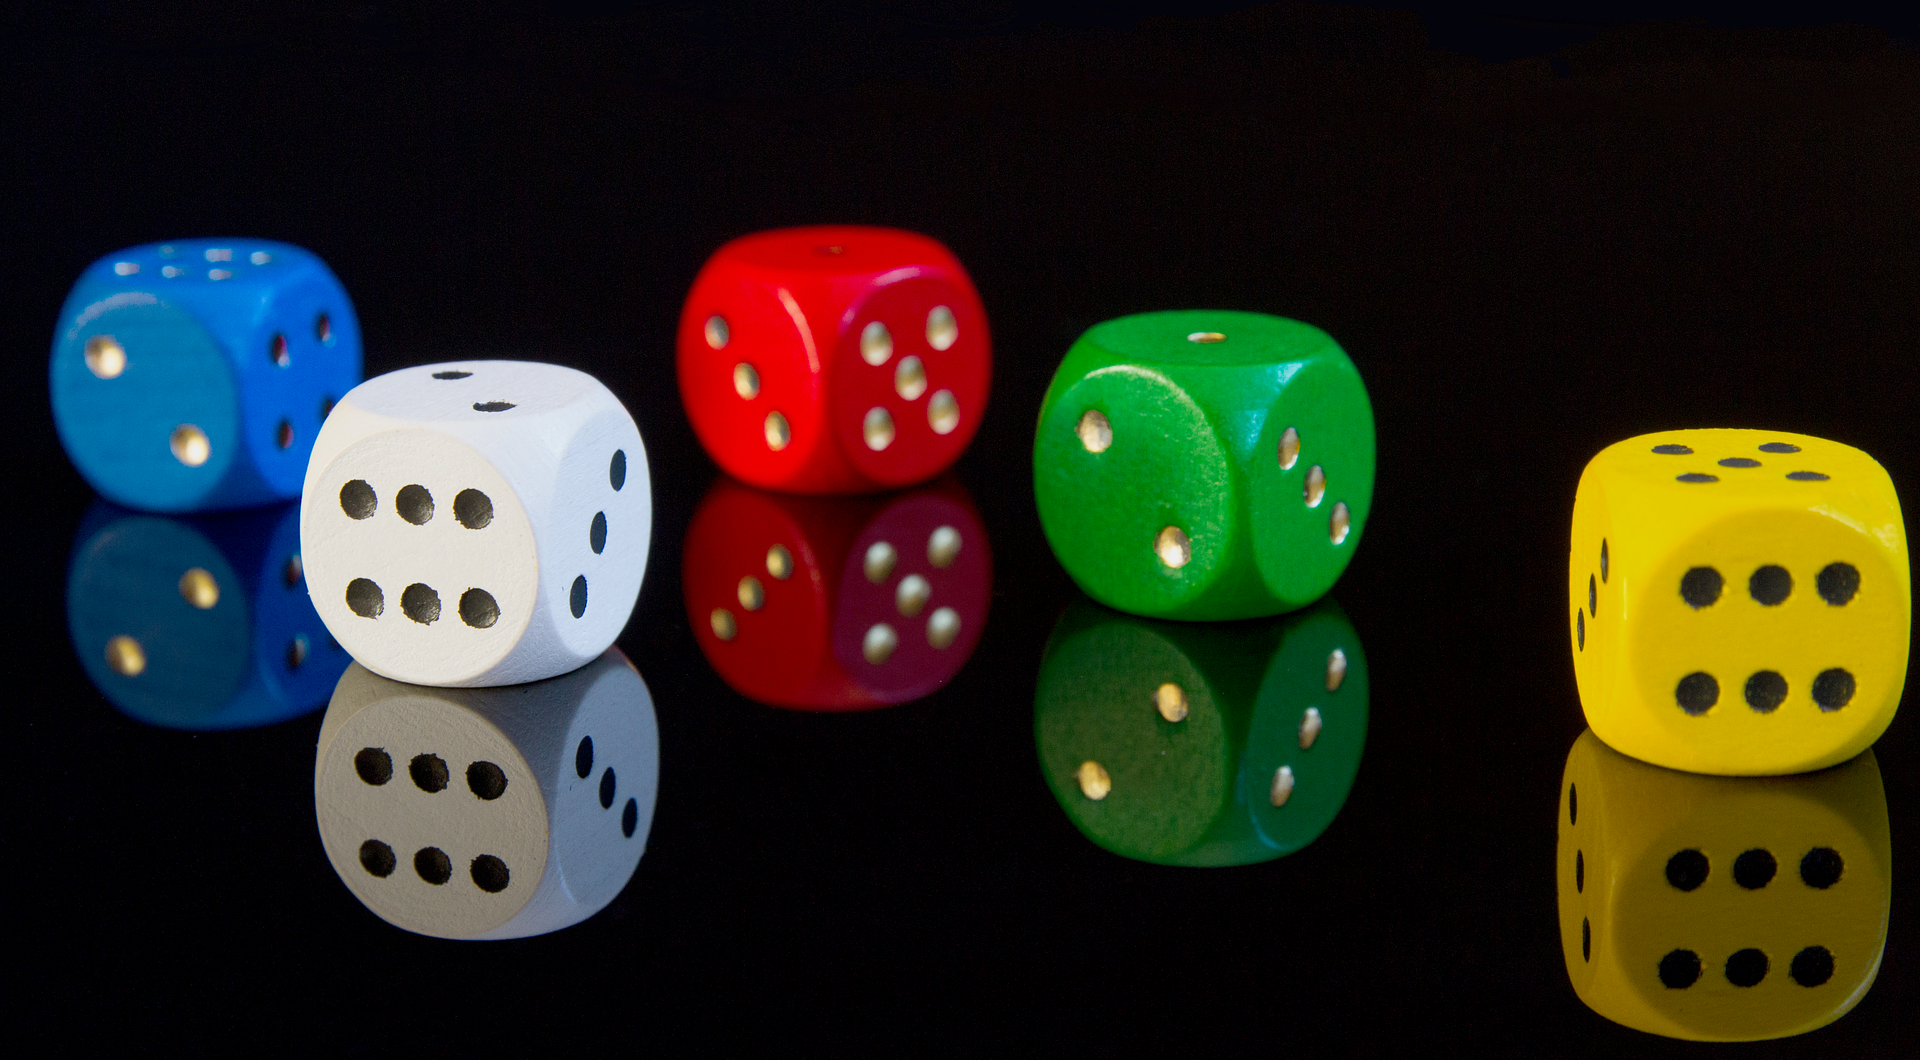 Muticolored dice on a black reflective background.